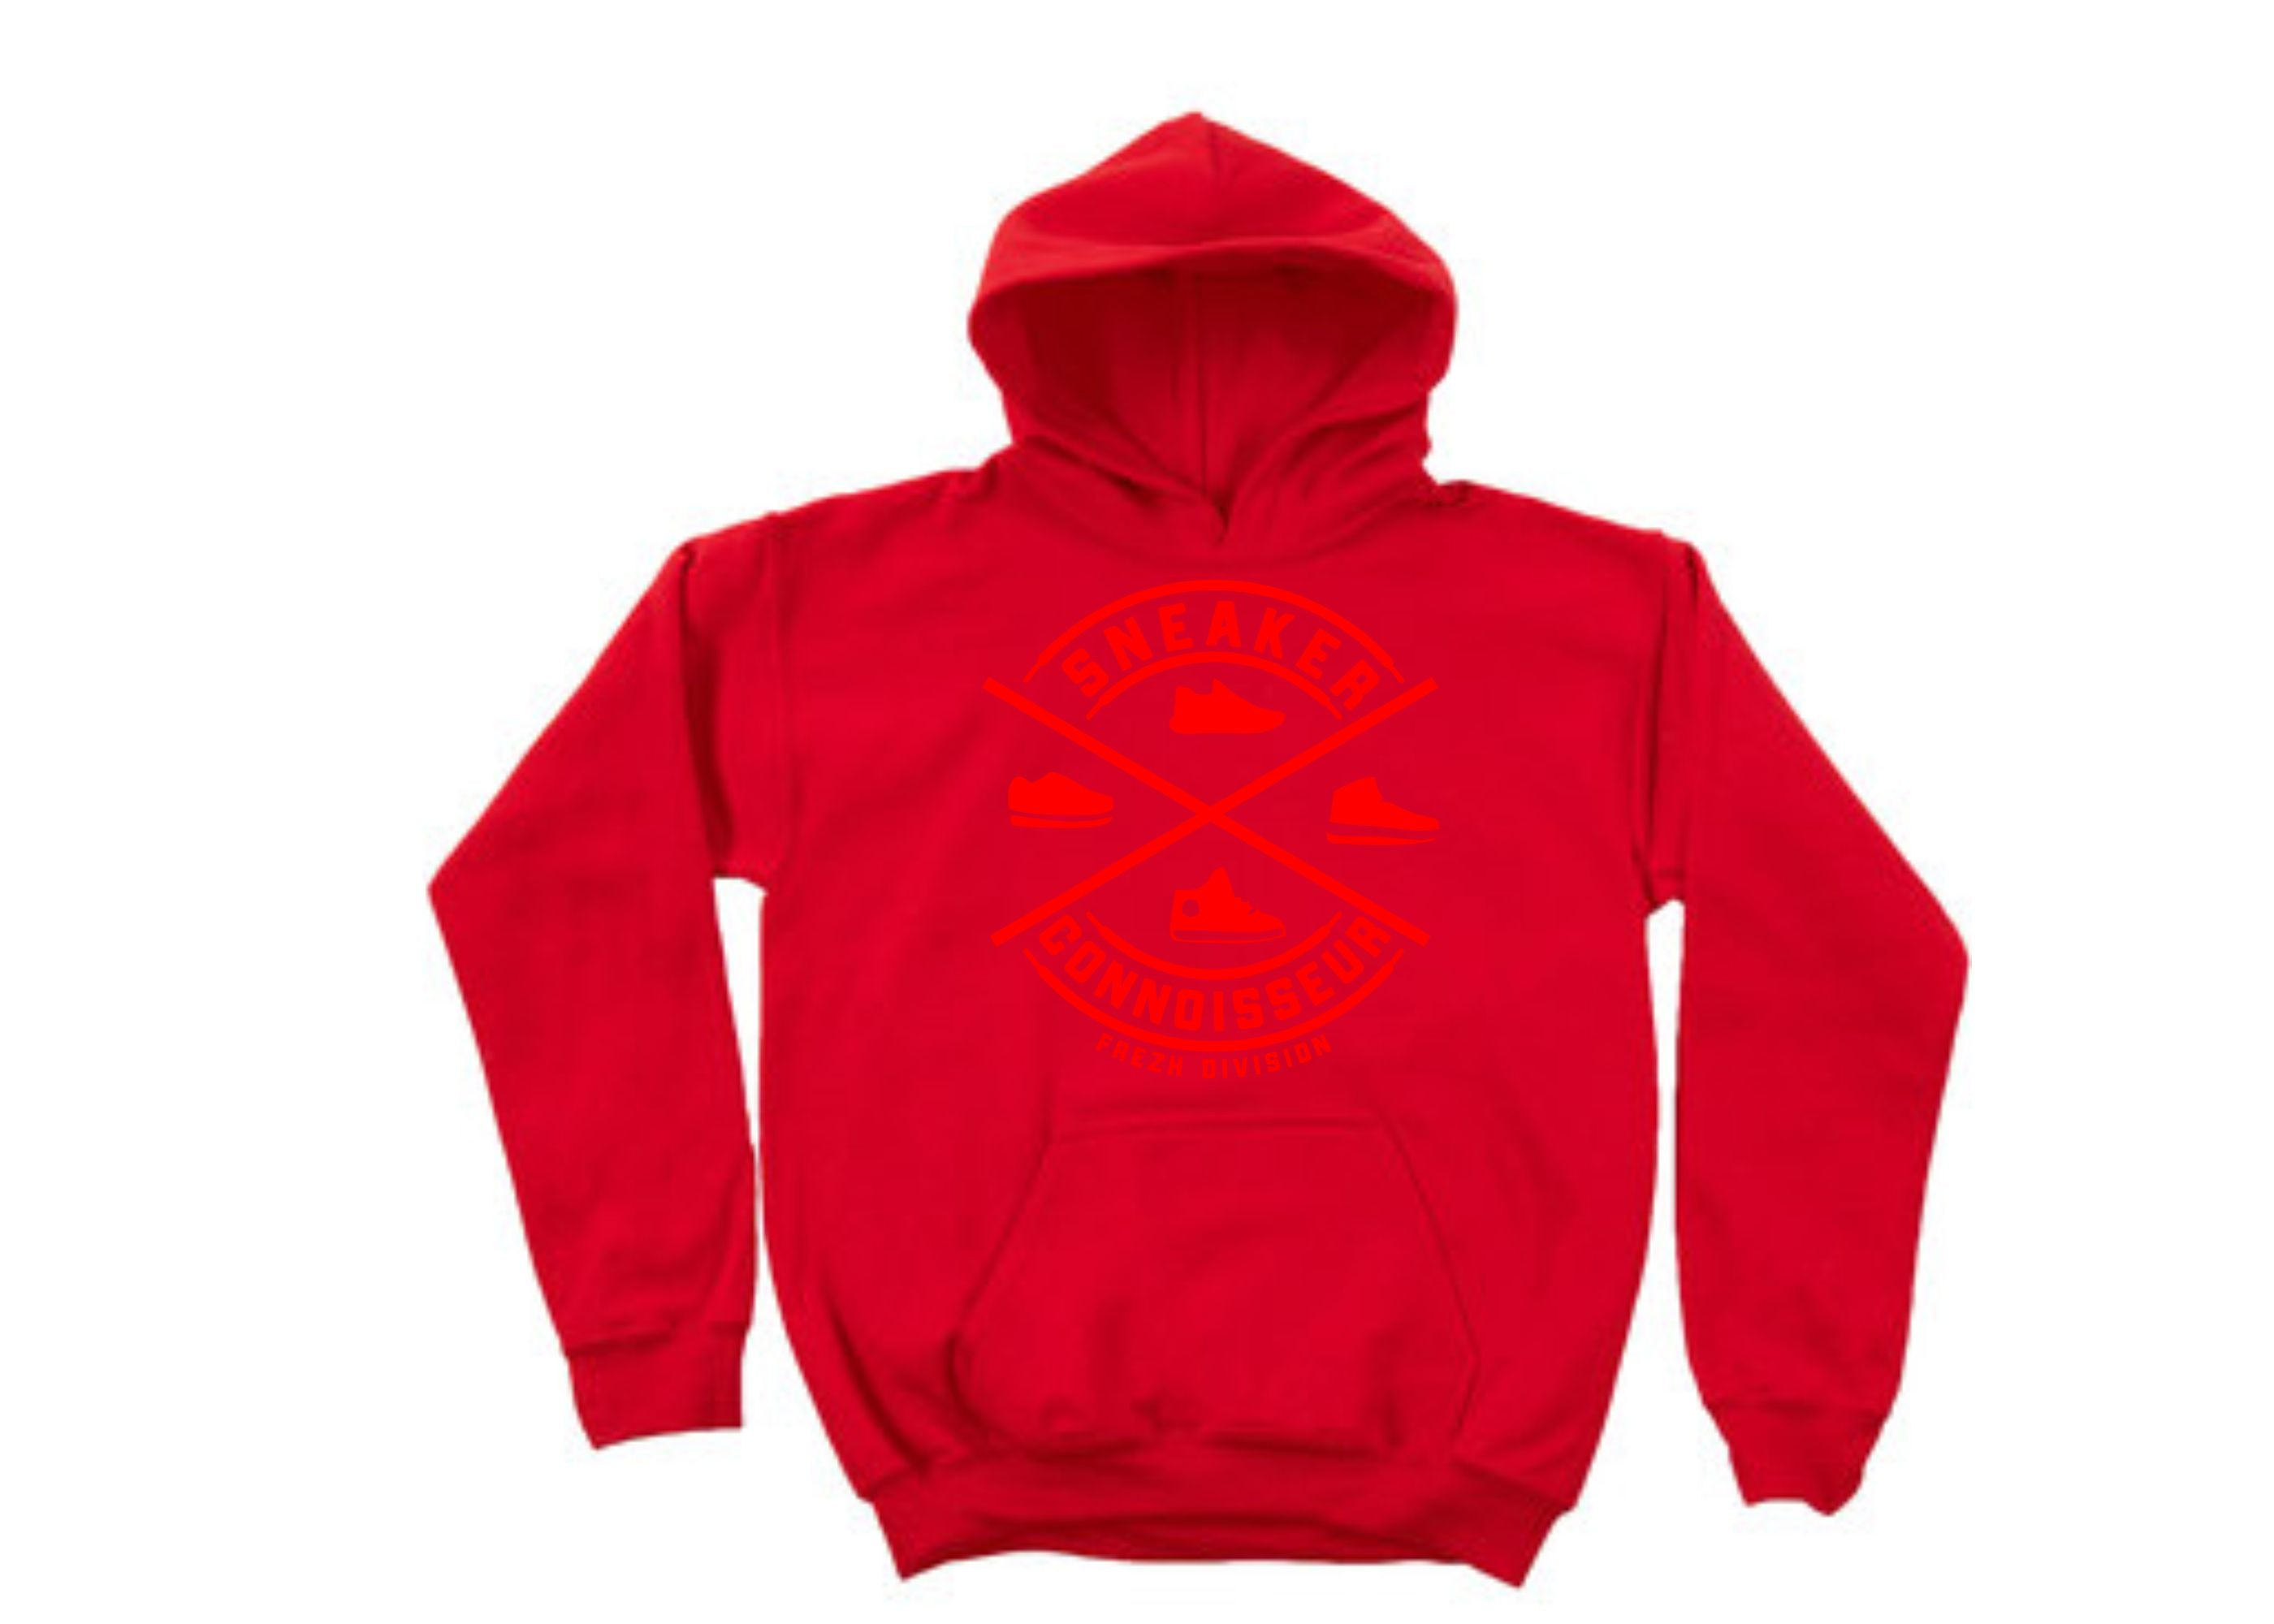 *exclusive* SNEAKER CONNOISSEUR V2 RED on RED HOODIE